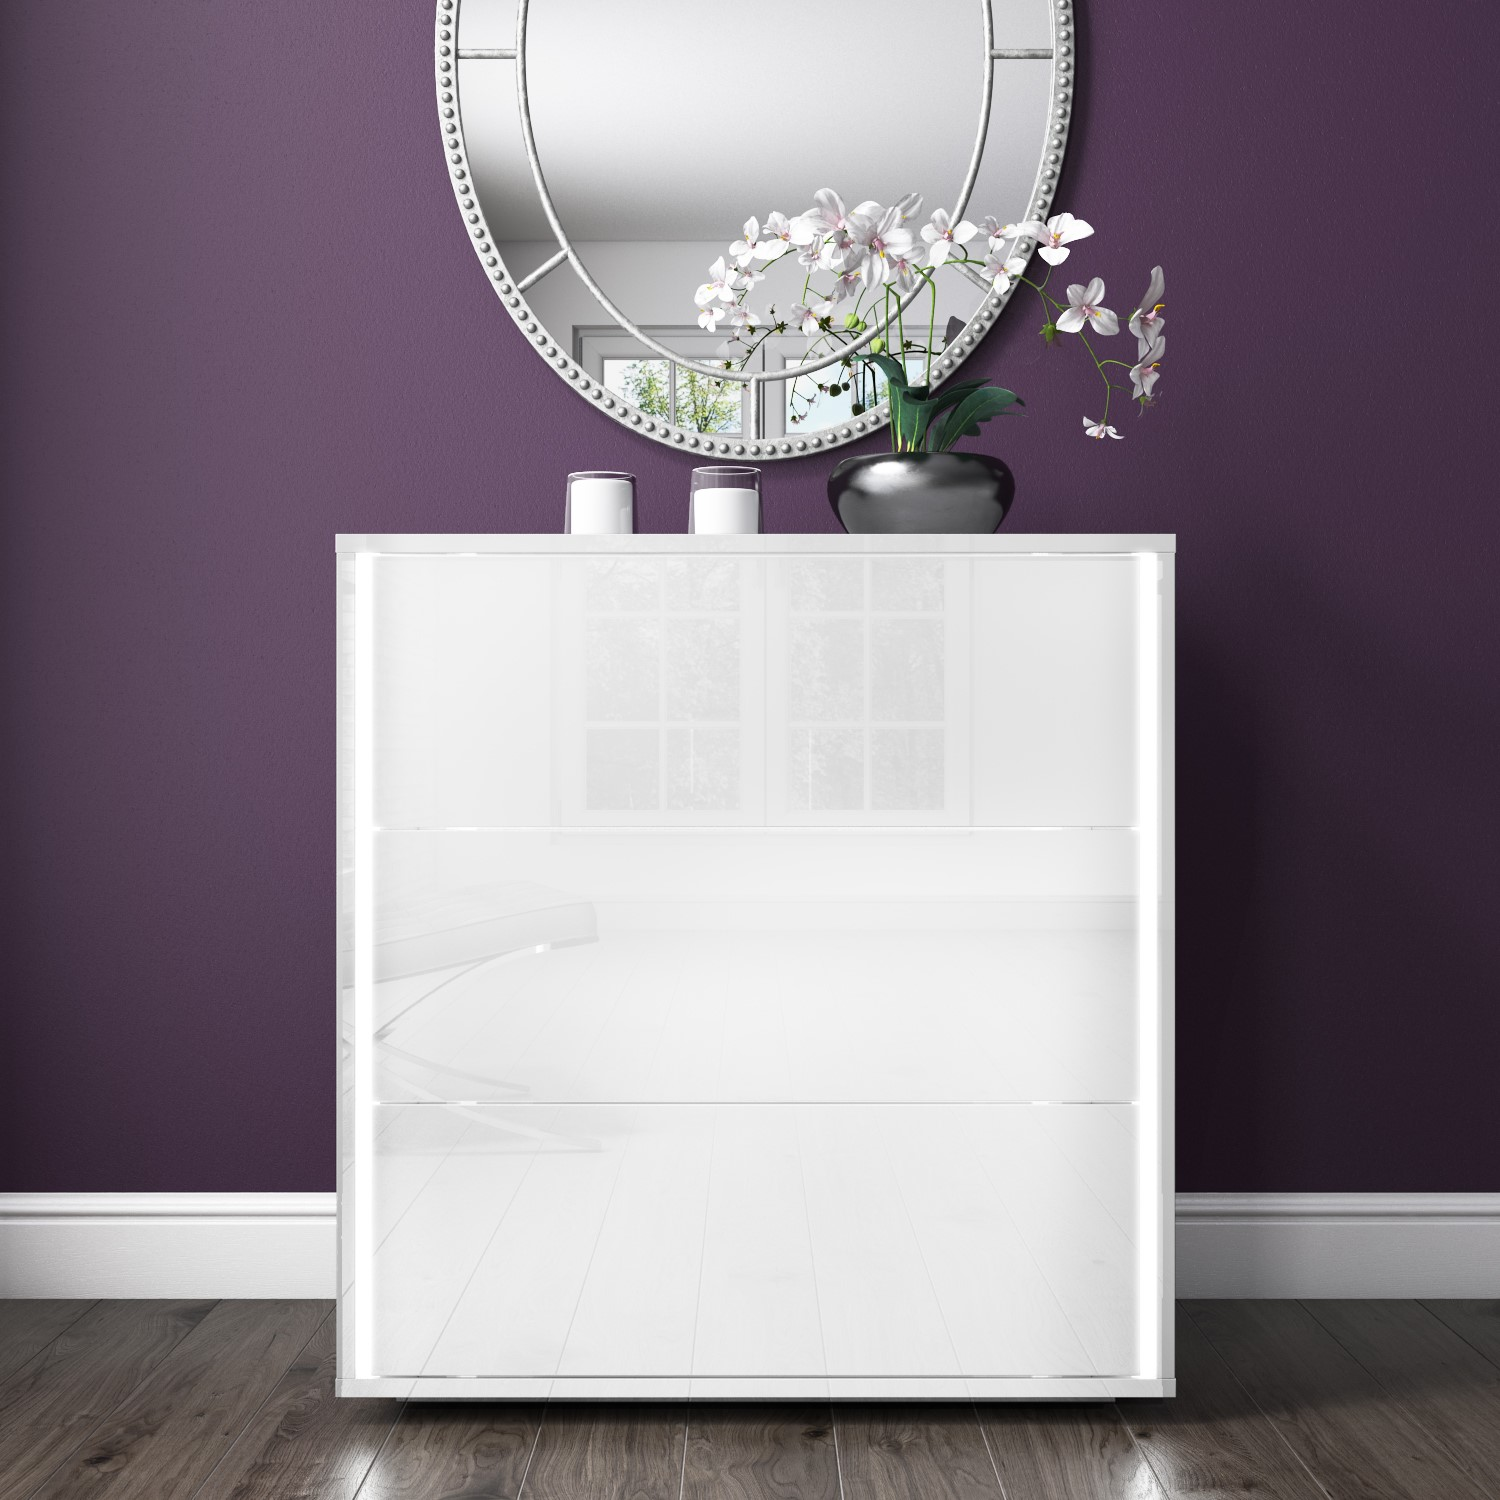 online store 17863 f98a9 Details about White High Gloss Chest of Drawers LED Lights 2 Drawer Bedroom  Cabinet